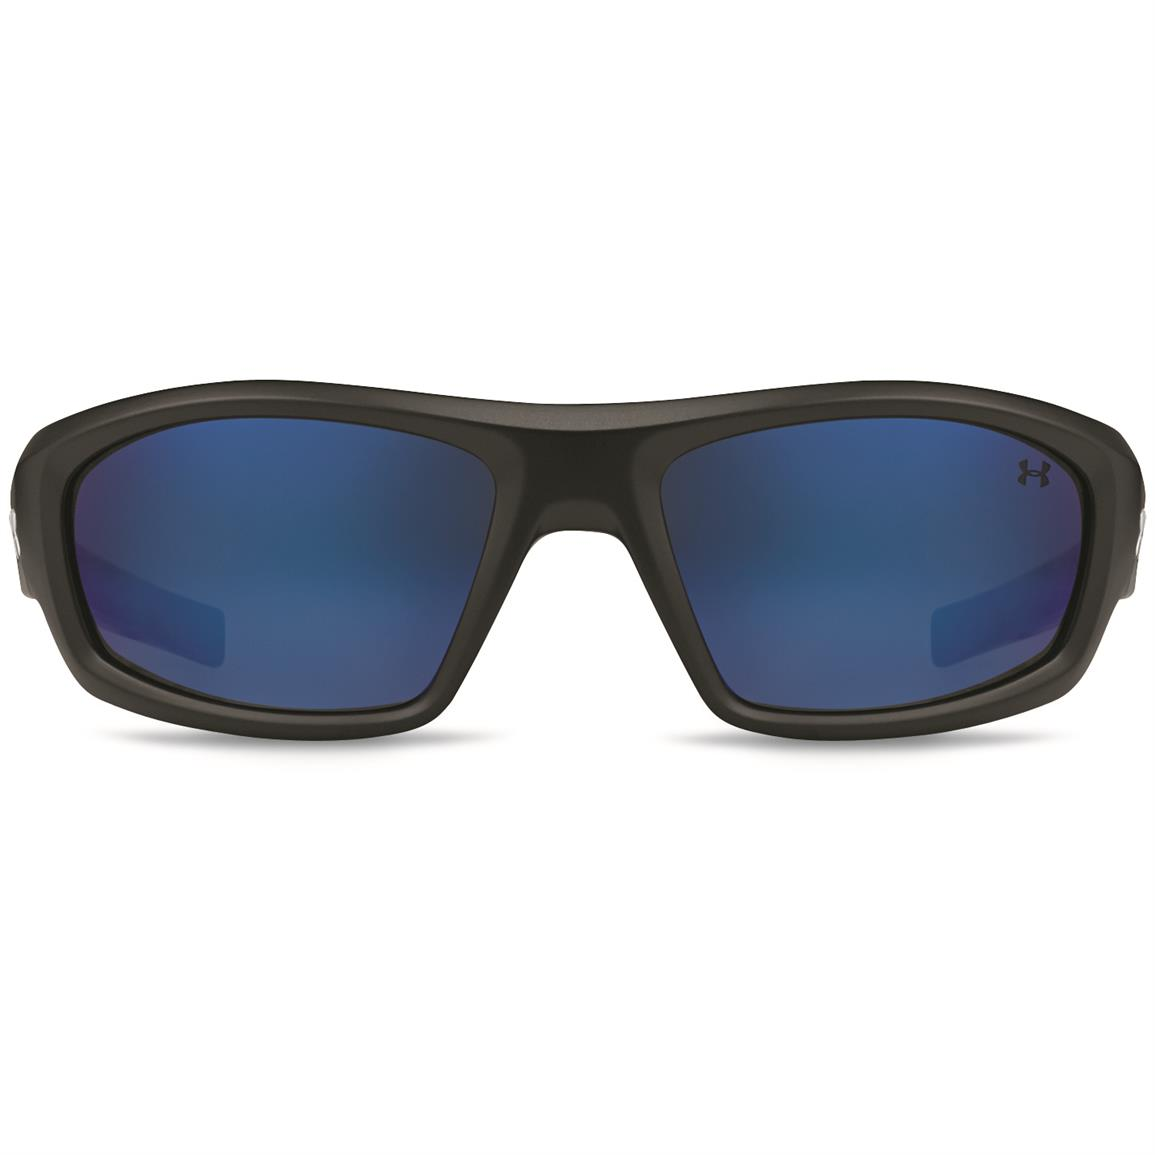 Under Armour Men's Power Satin Polarized Sunglasses